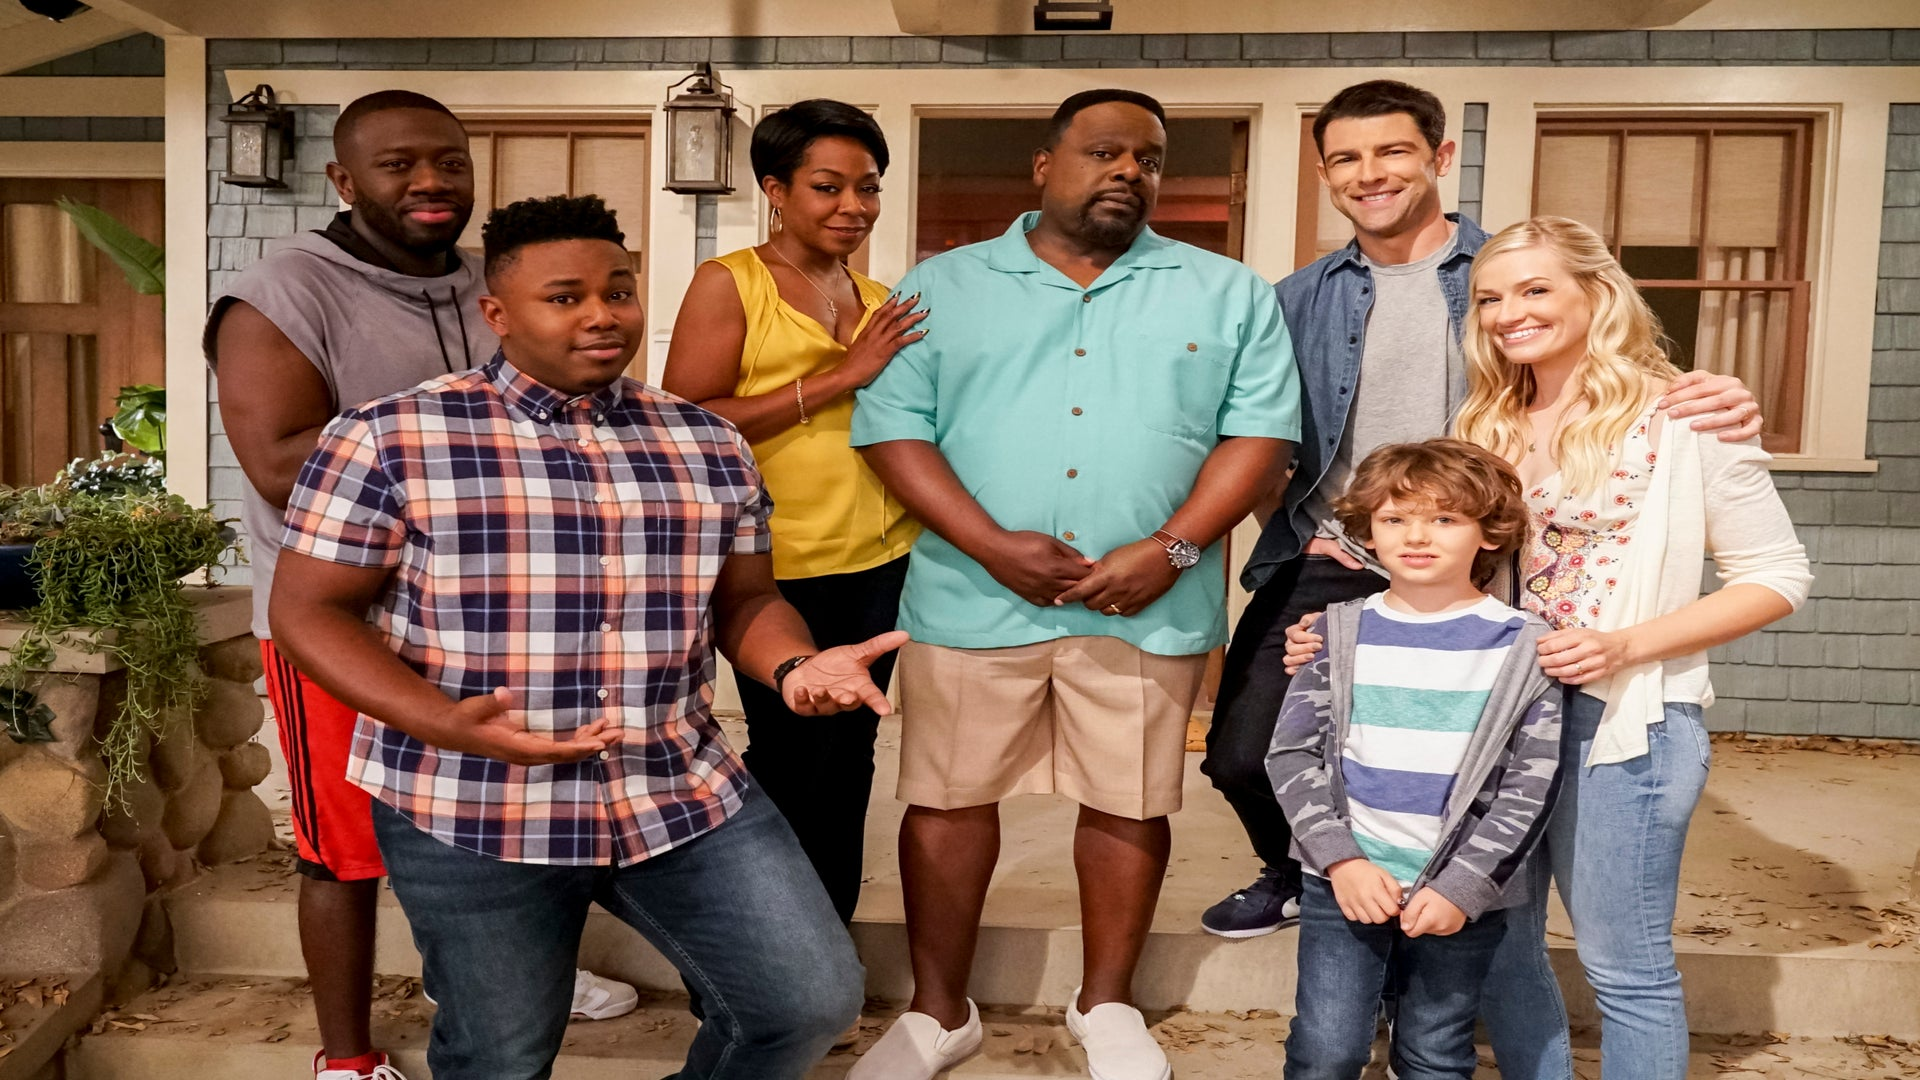 'The Neighborhood' Star Tichina Arnold Catches Neighbor In Comprising Position In New Episode